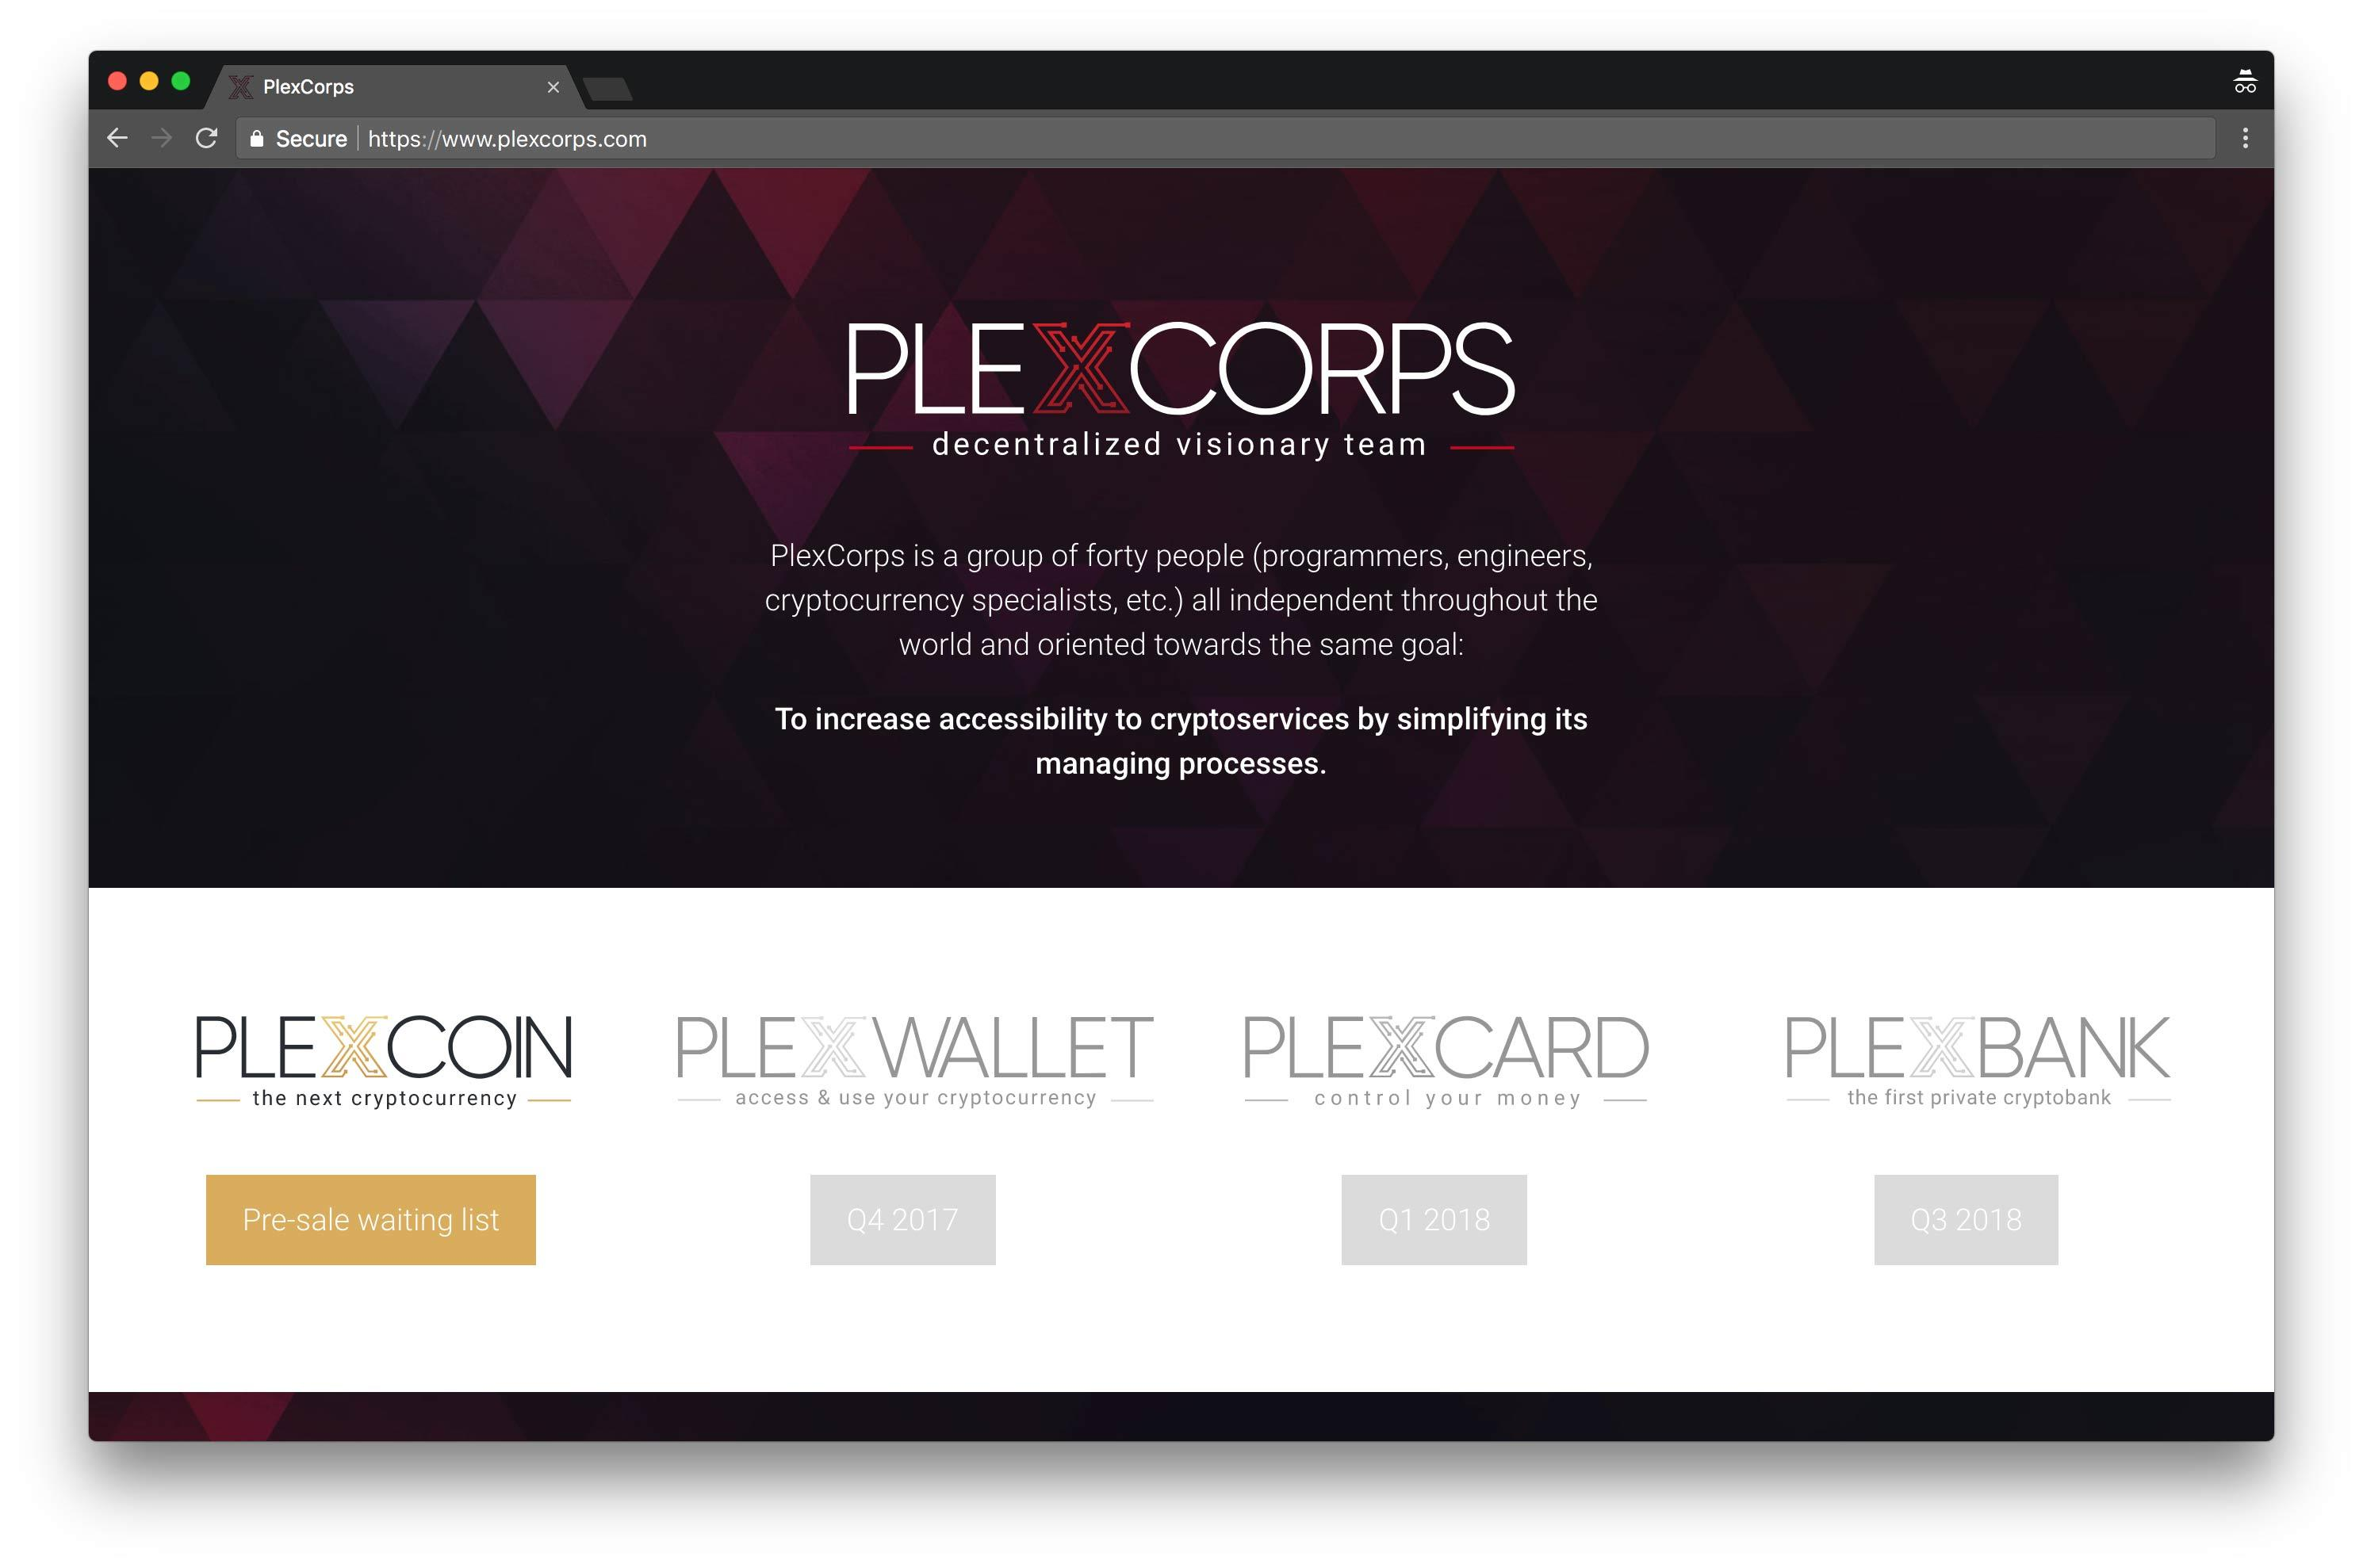 The PlexCorps website shows various cryptocurrency-based services, but the US SEC says the company is a fraud.